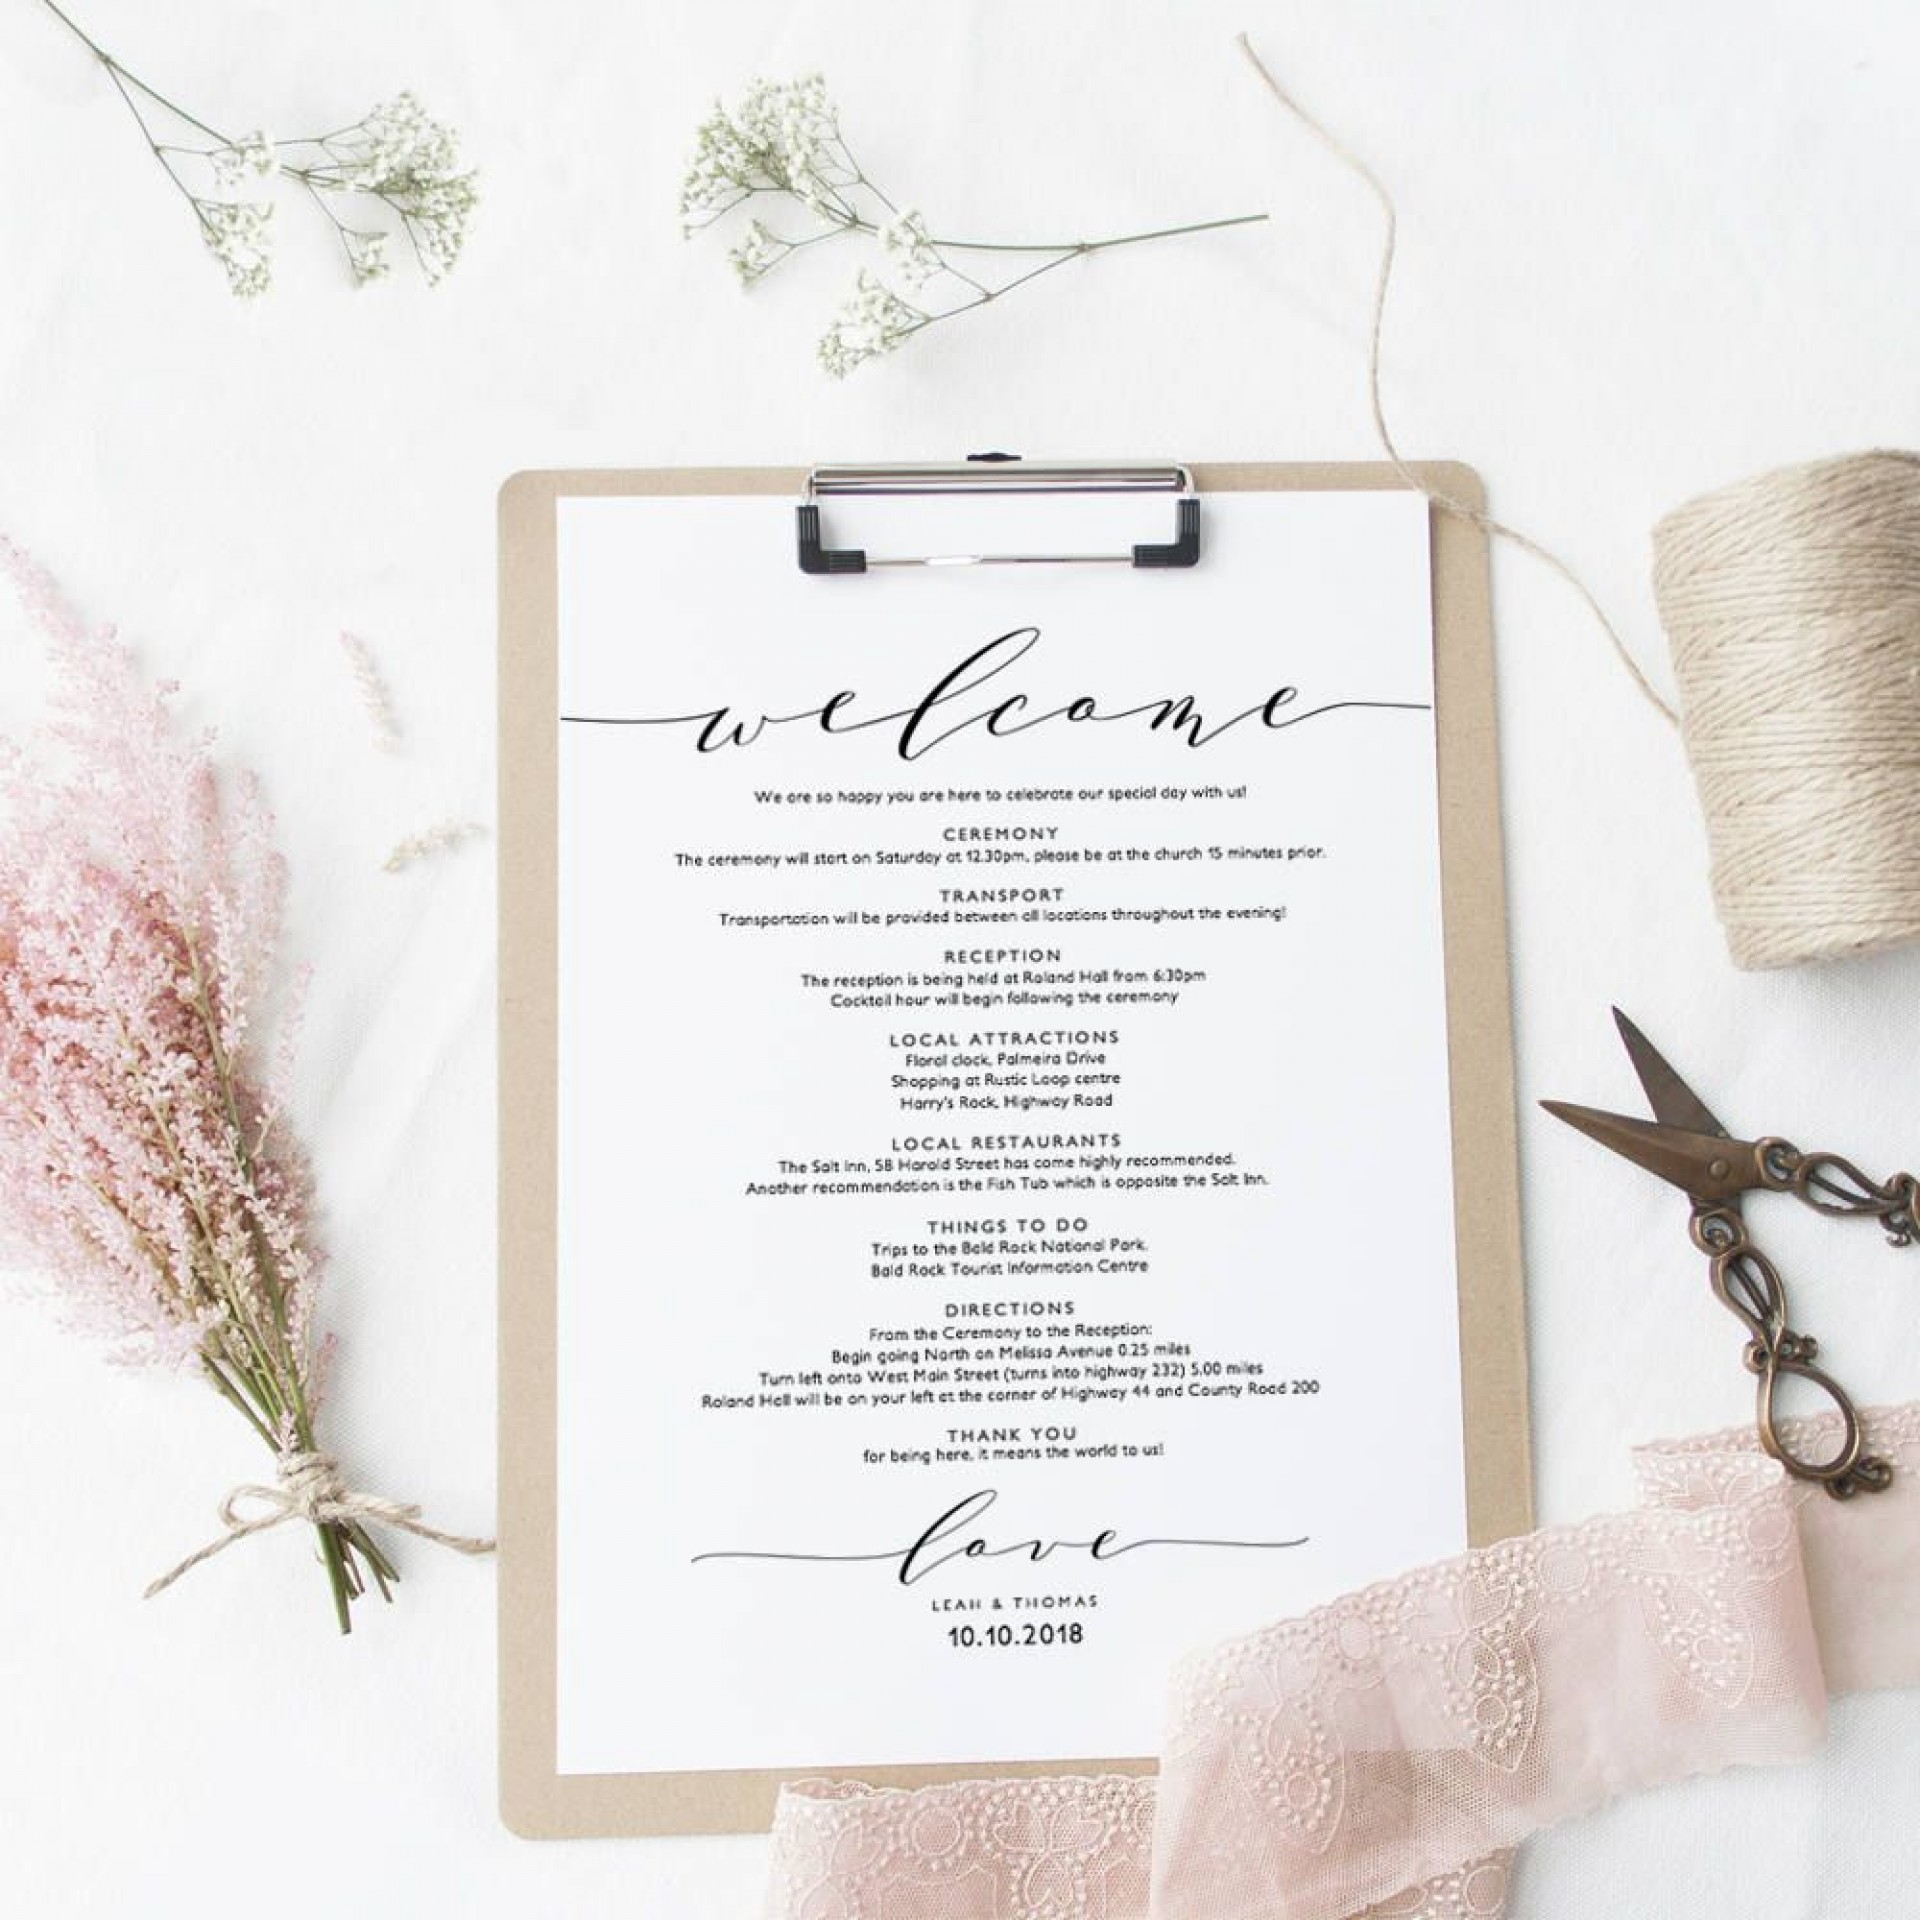 004 Remarkable Wedding Guest Welcome Letter Template Example 1920